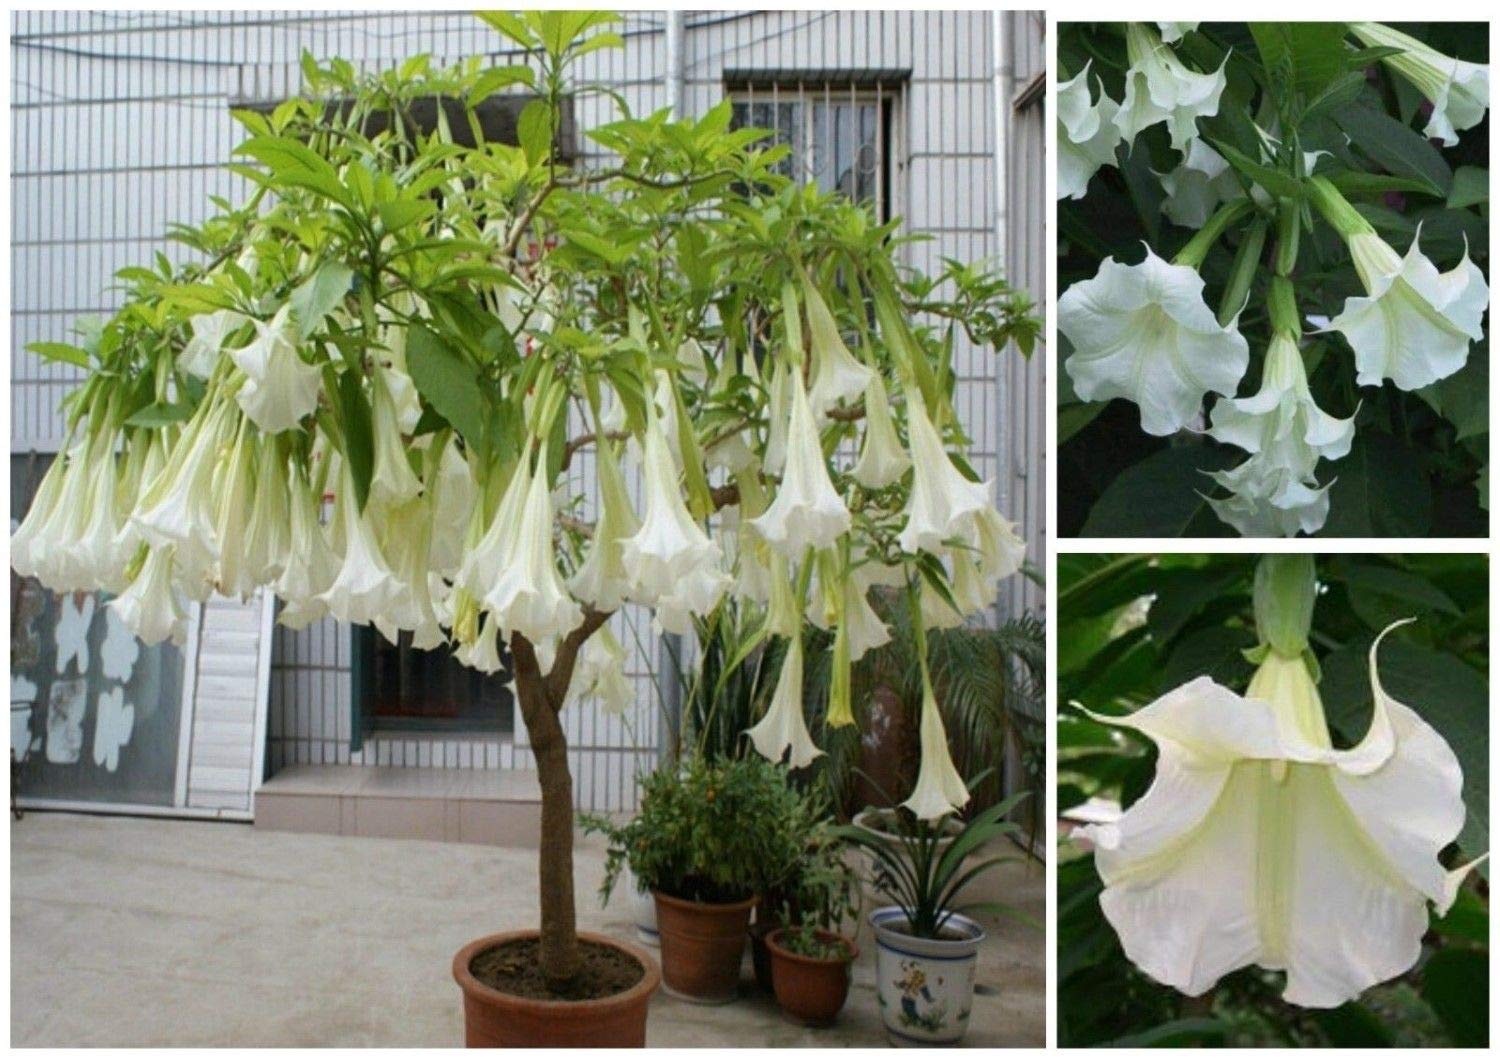 Giant White Brugmansia Angel Trumpet Live Plant 4-6 inches Tall, Shipped in Pot